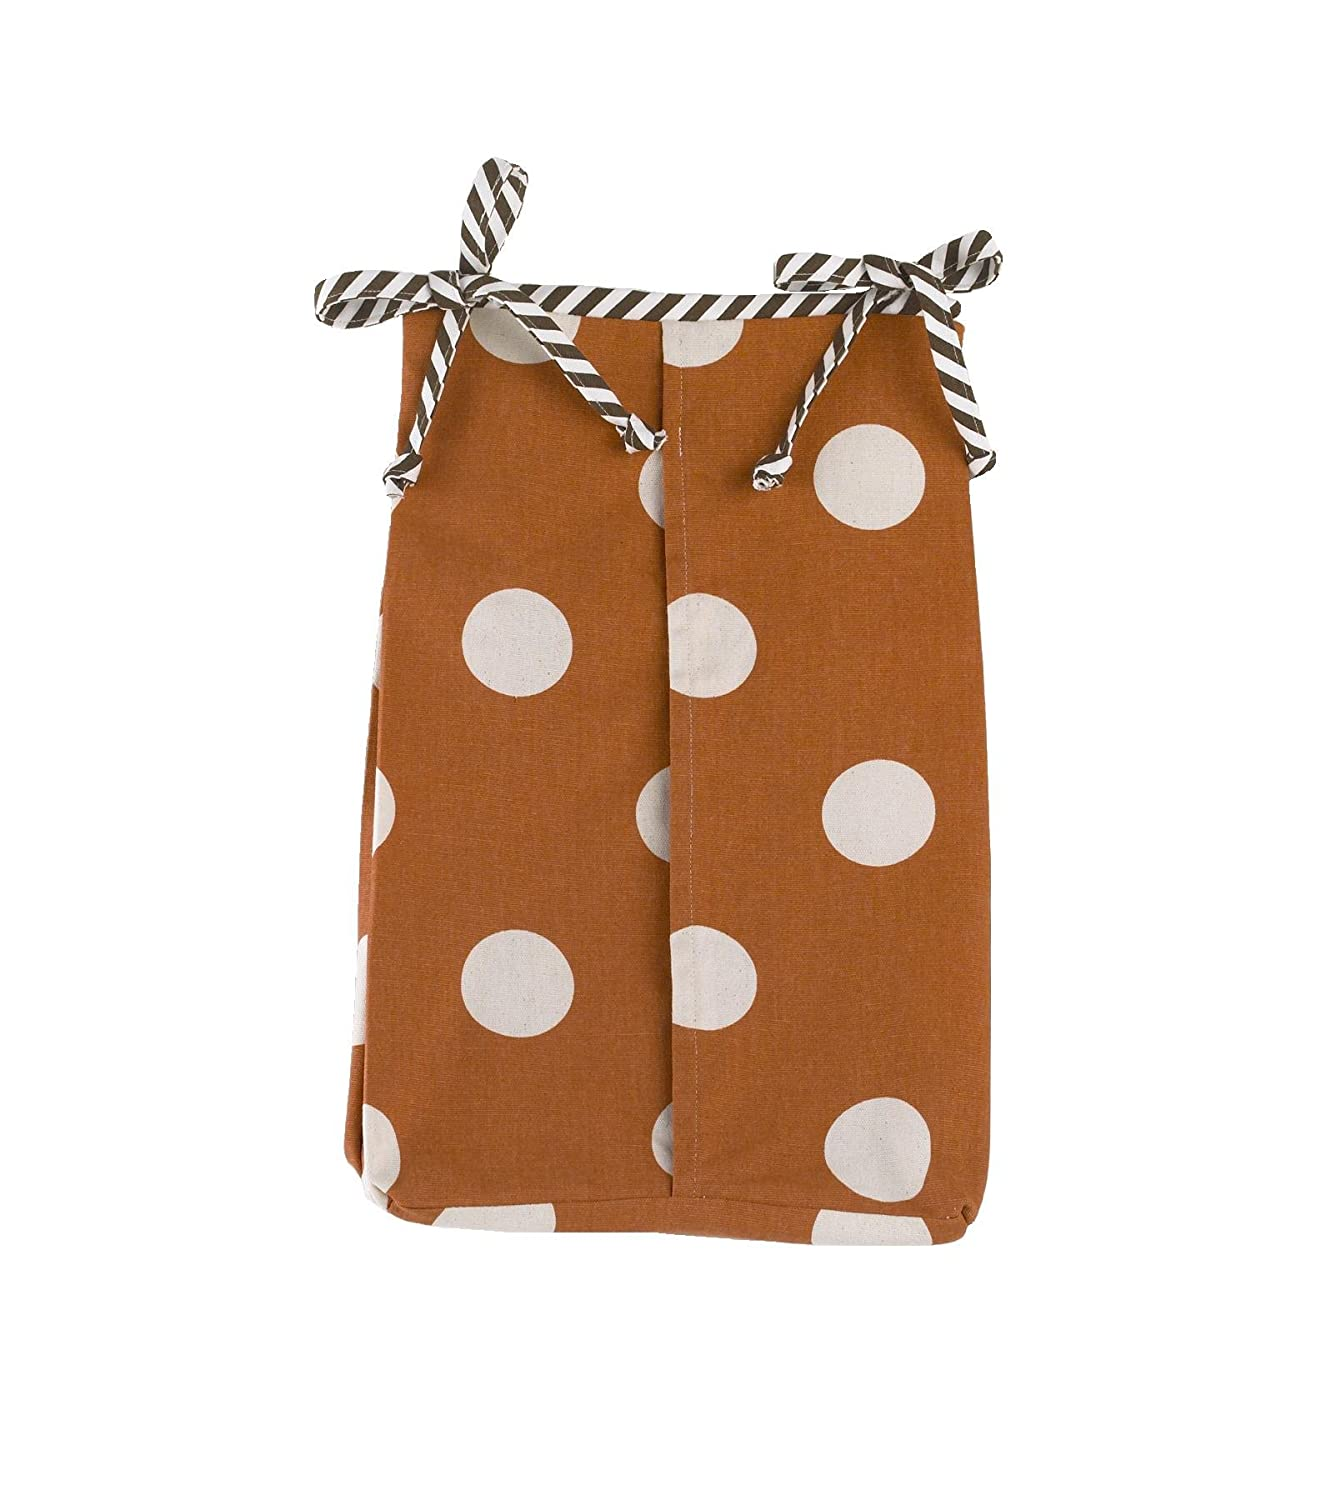 Cotton Tale Designs Nightingale Diaper Stacker, 1-Pack NGDS